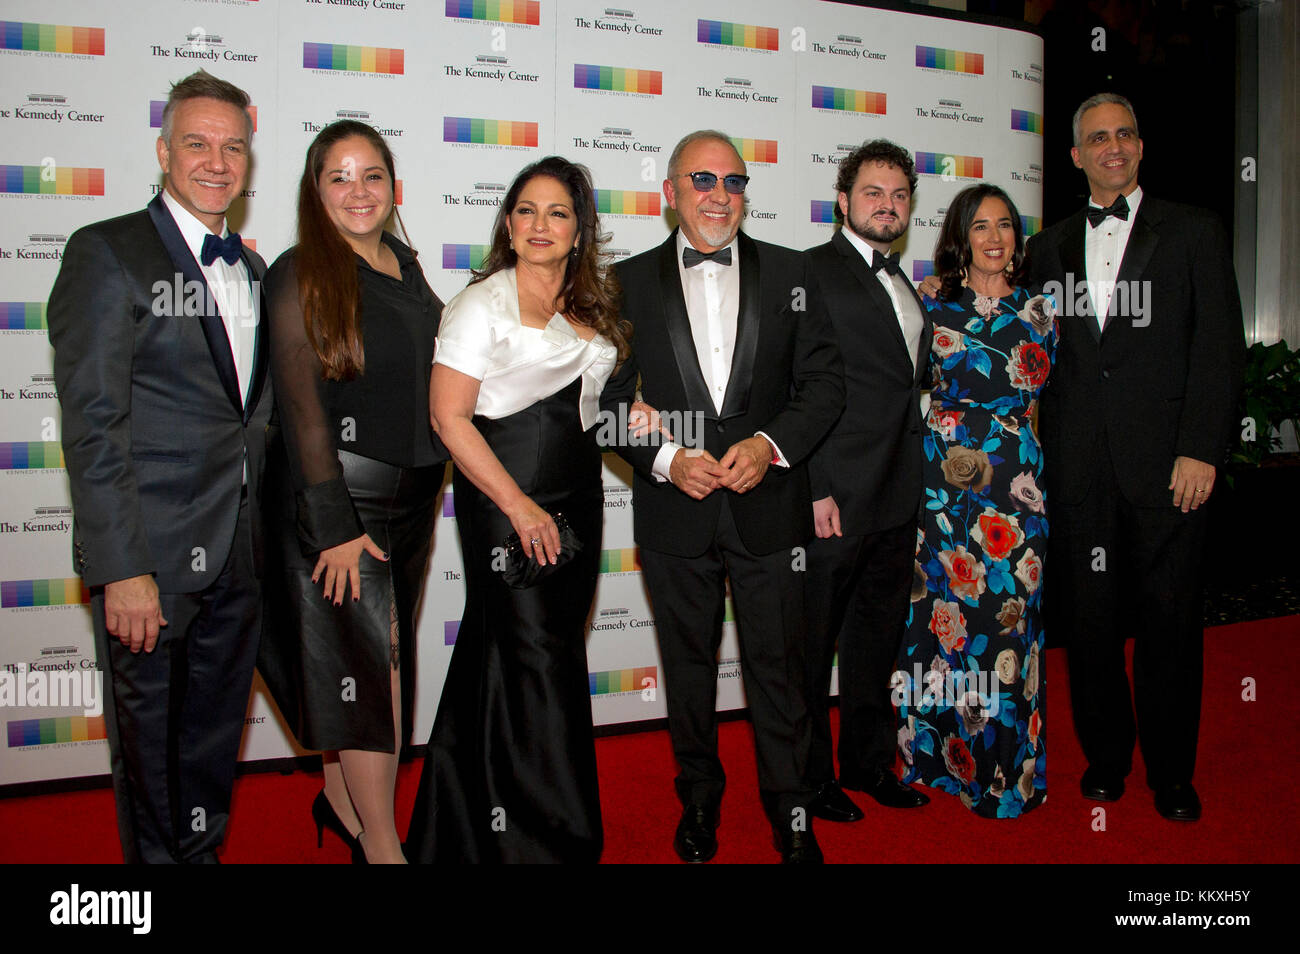 Washington DC, USA. 2nd December, 2017. Gloria Estefan, her husband, Emilio, and their family, arrive for the formal - Stock Image